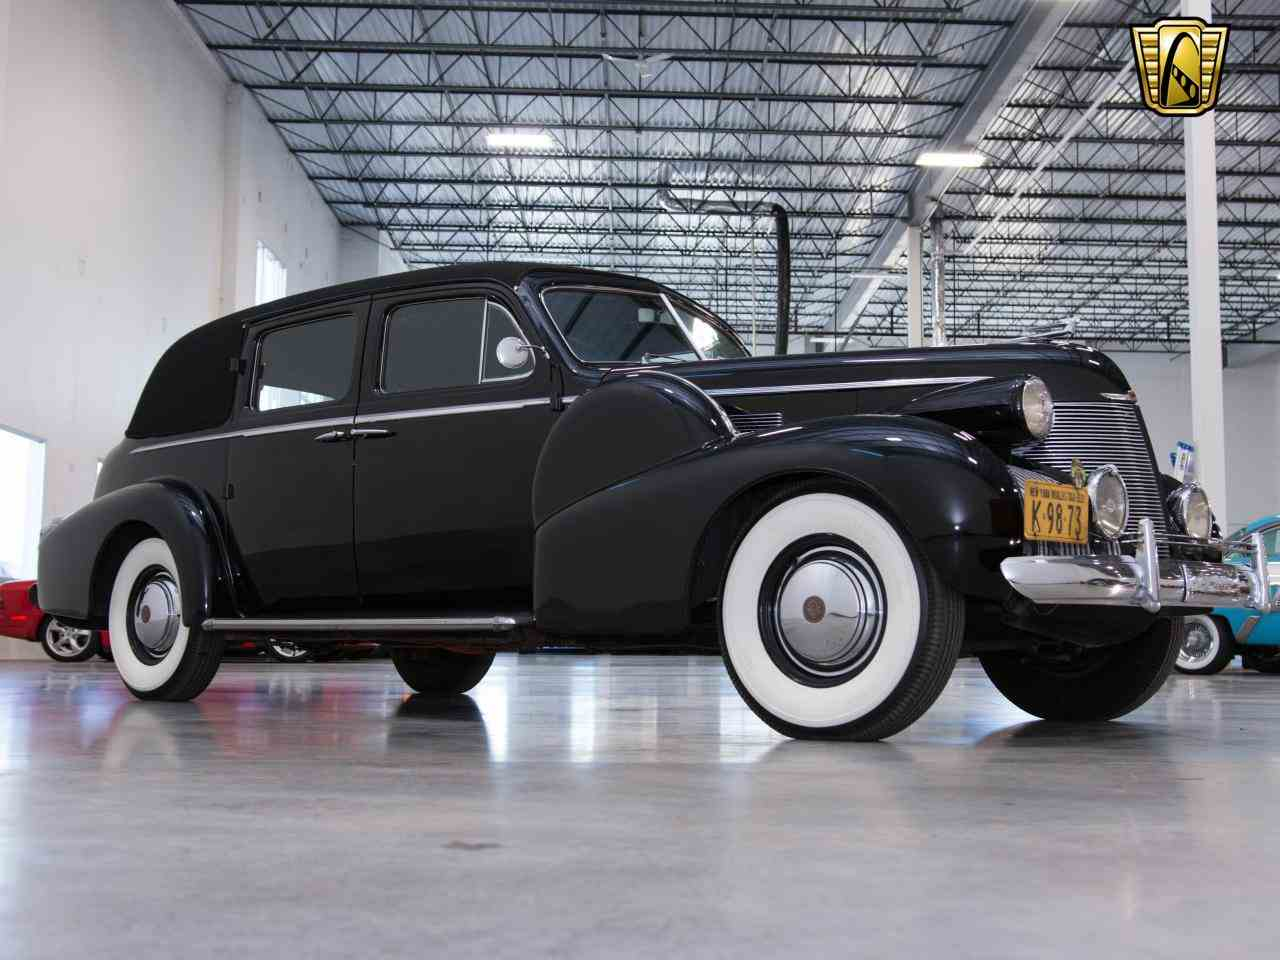 Large Picture of Classic '39 Cadillac 7 Passenger Touring W/ Trunk located in Wisconsin - KHP0